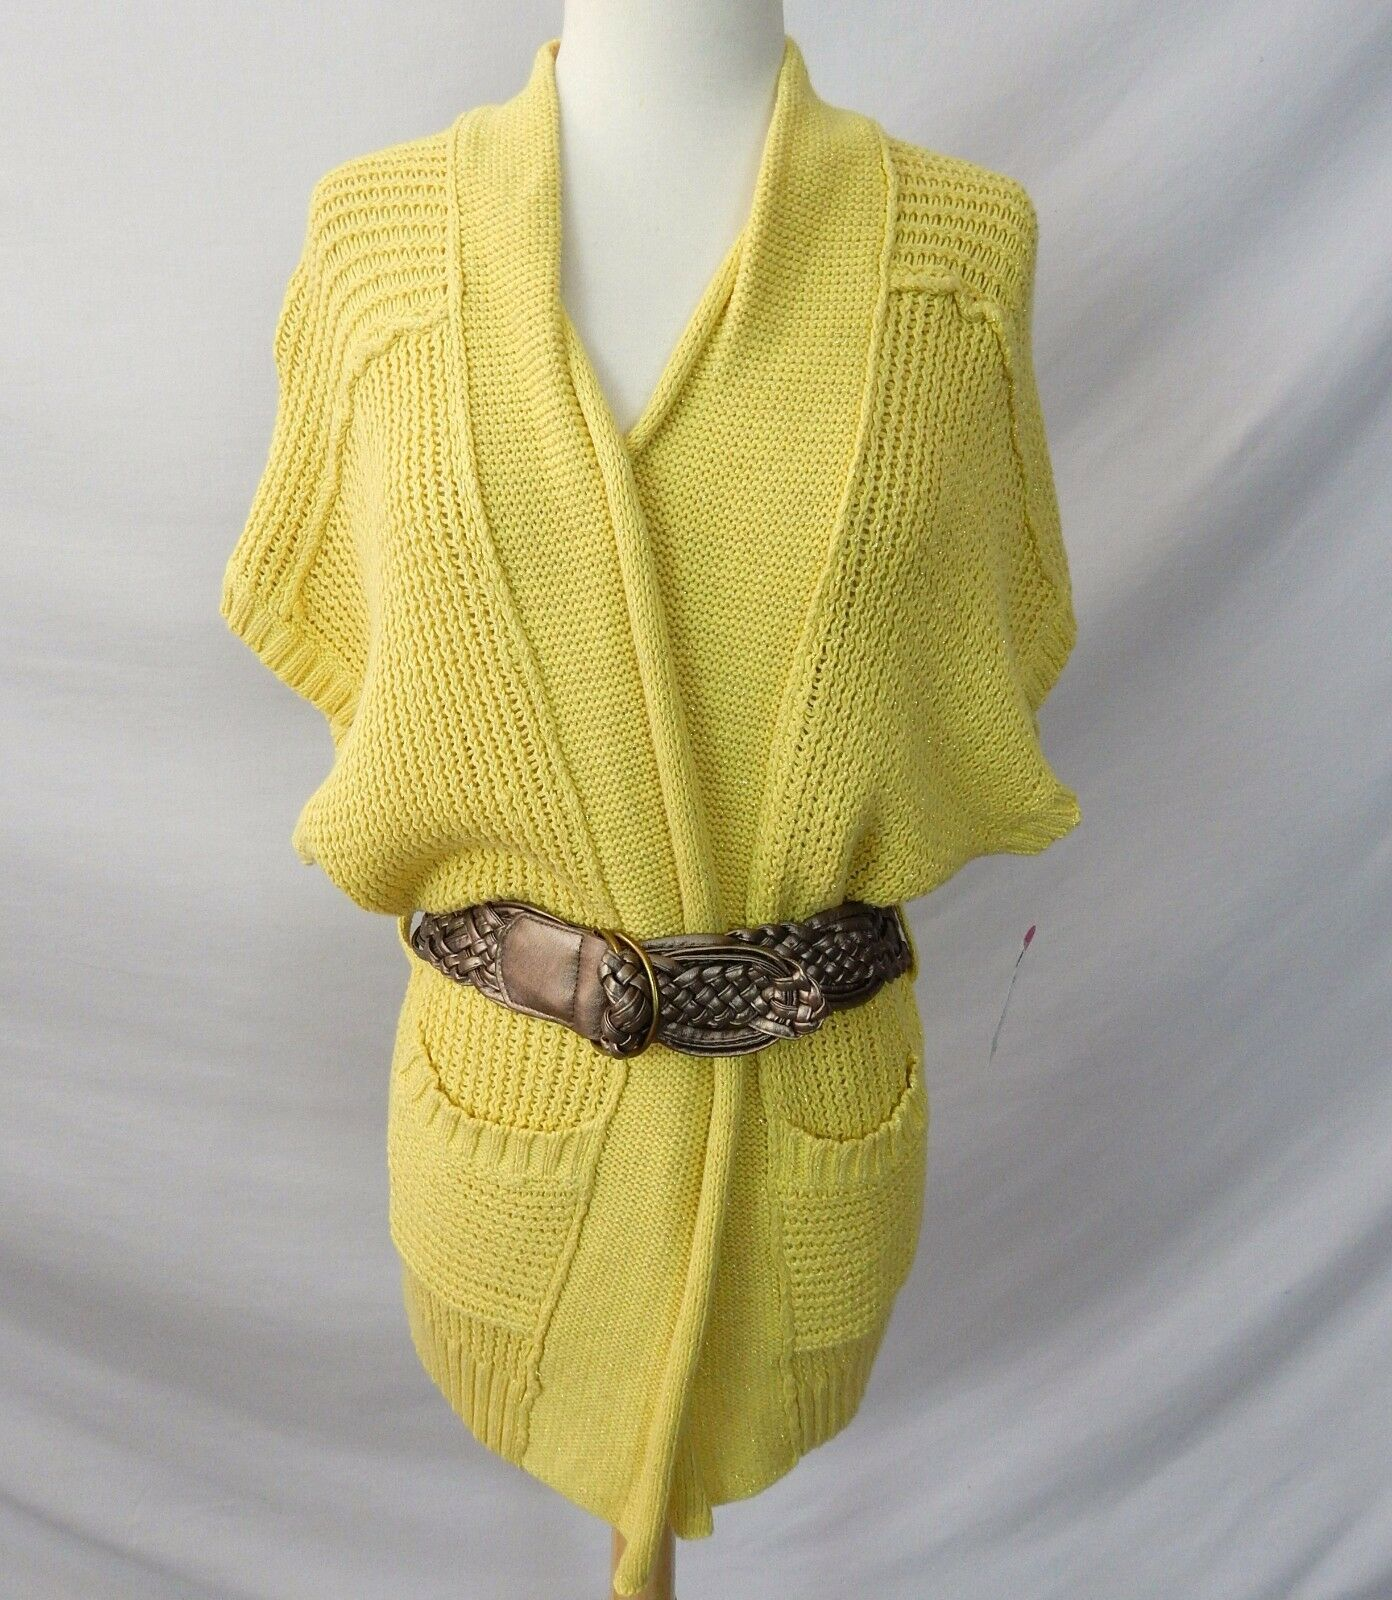 ETCETERA YELLOW gold HEAVY KNIT BELTED CARDIGAN SWEATER w BELT size S NEW